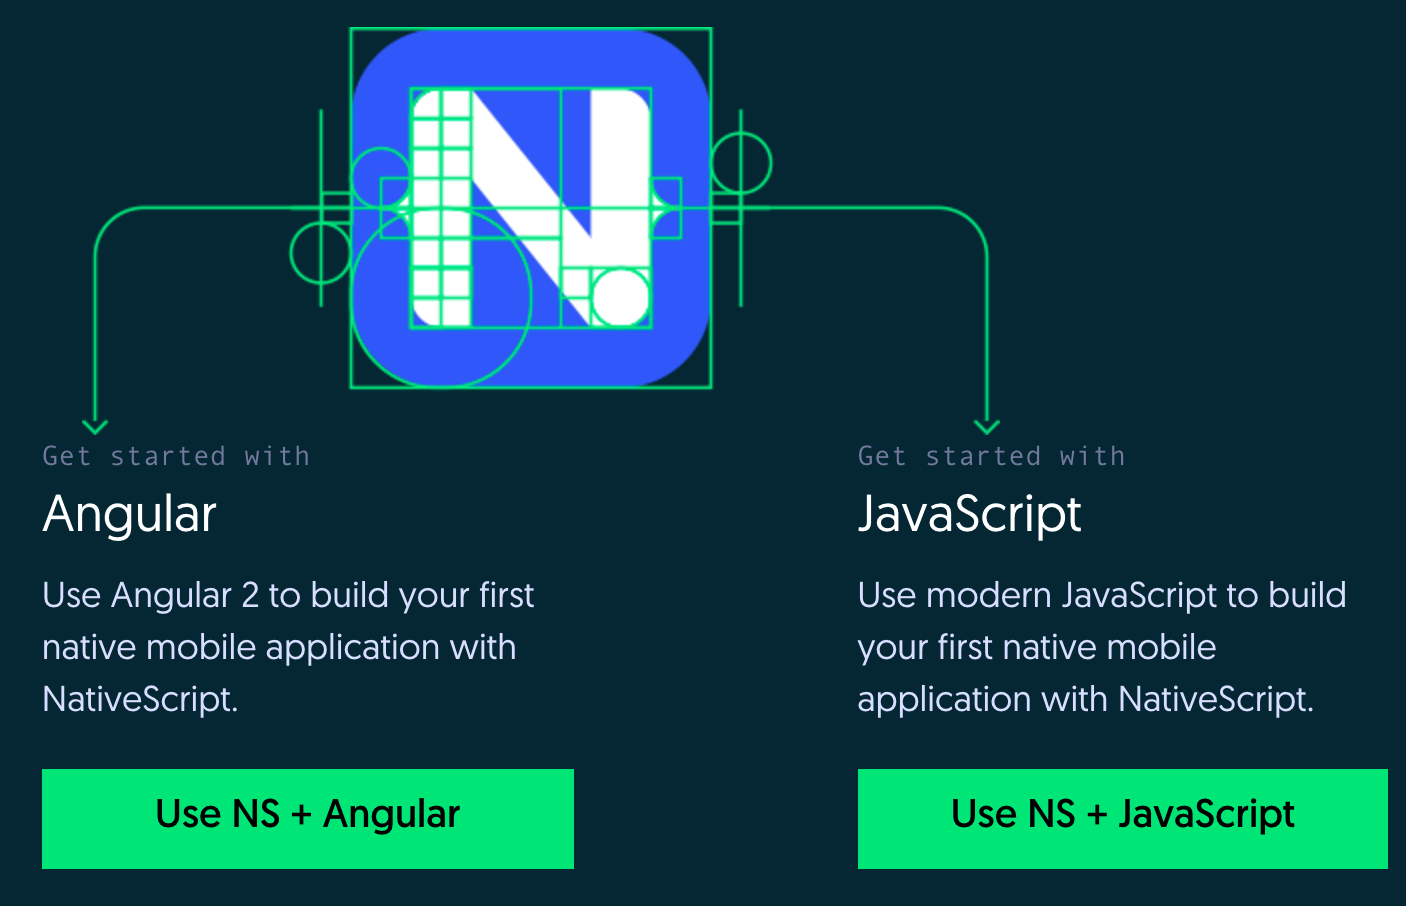 104146 cx1g 2896879 NativeScript 3.0 计划4月发布,集成 Angular4